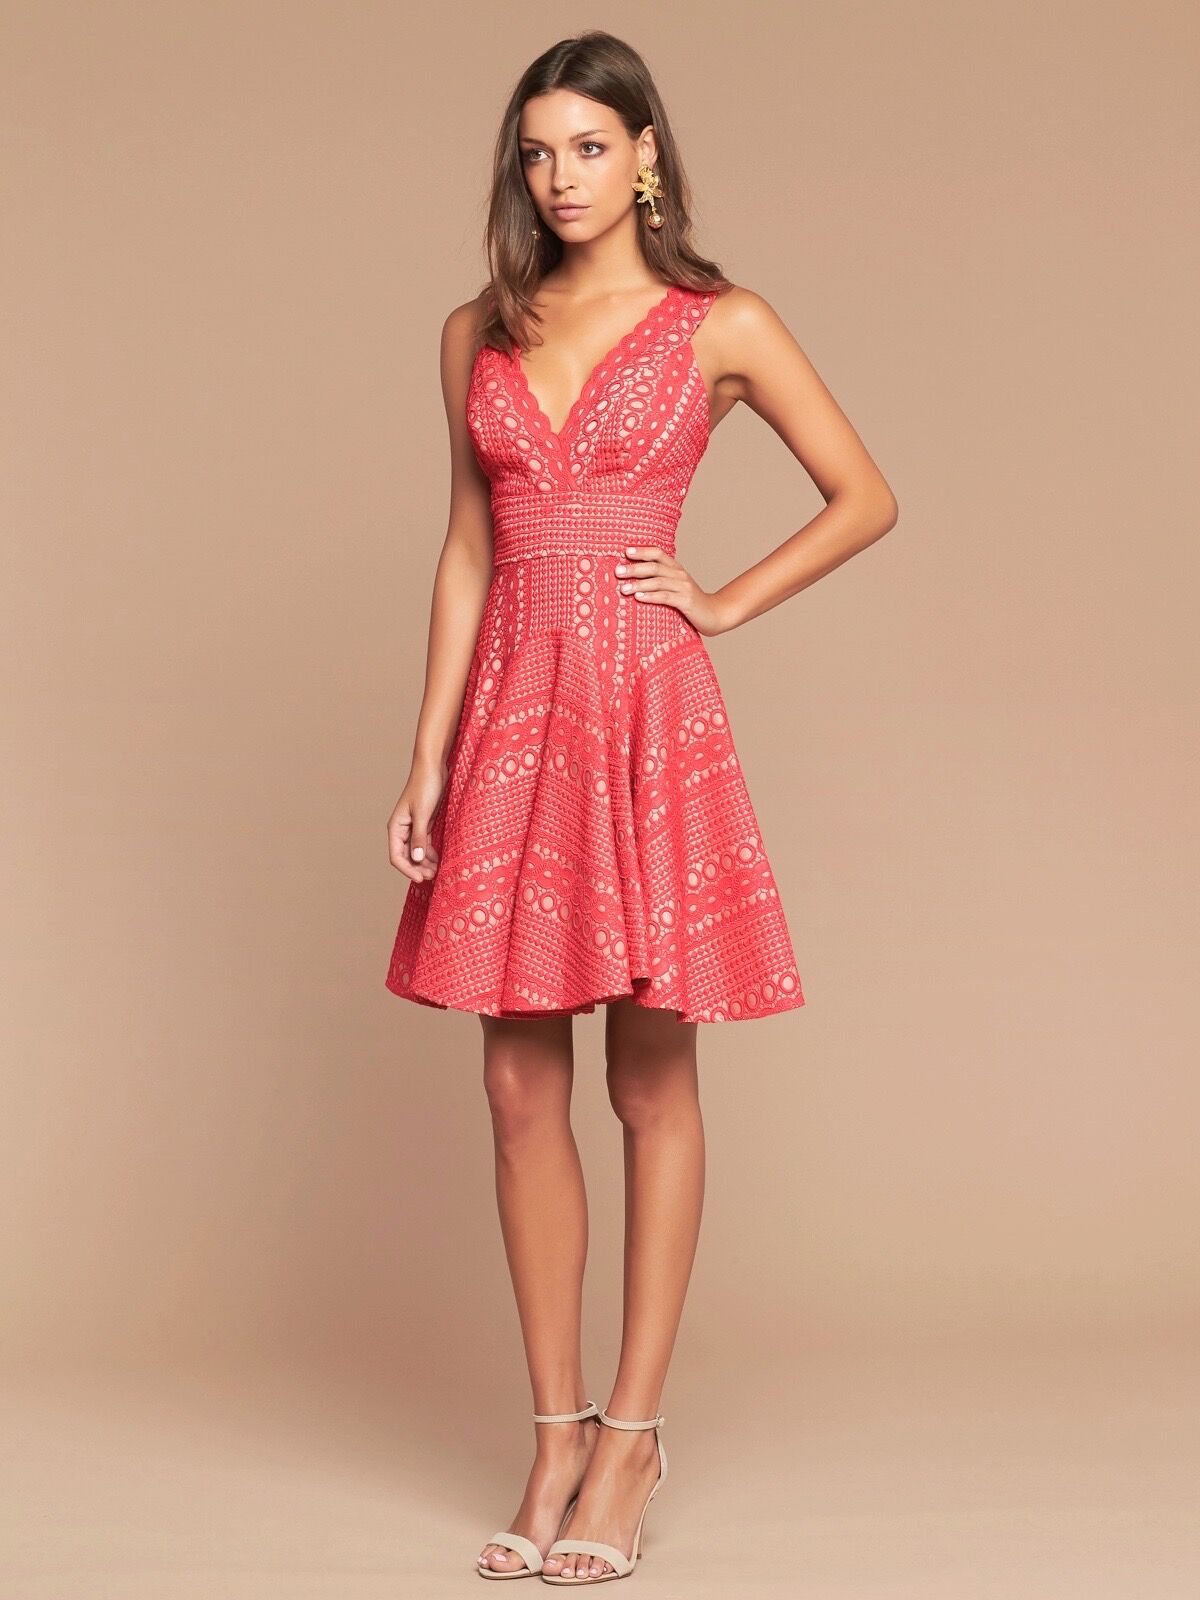 GIGI BONDED LACE DRESS - WATERMELON/NUDE